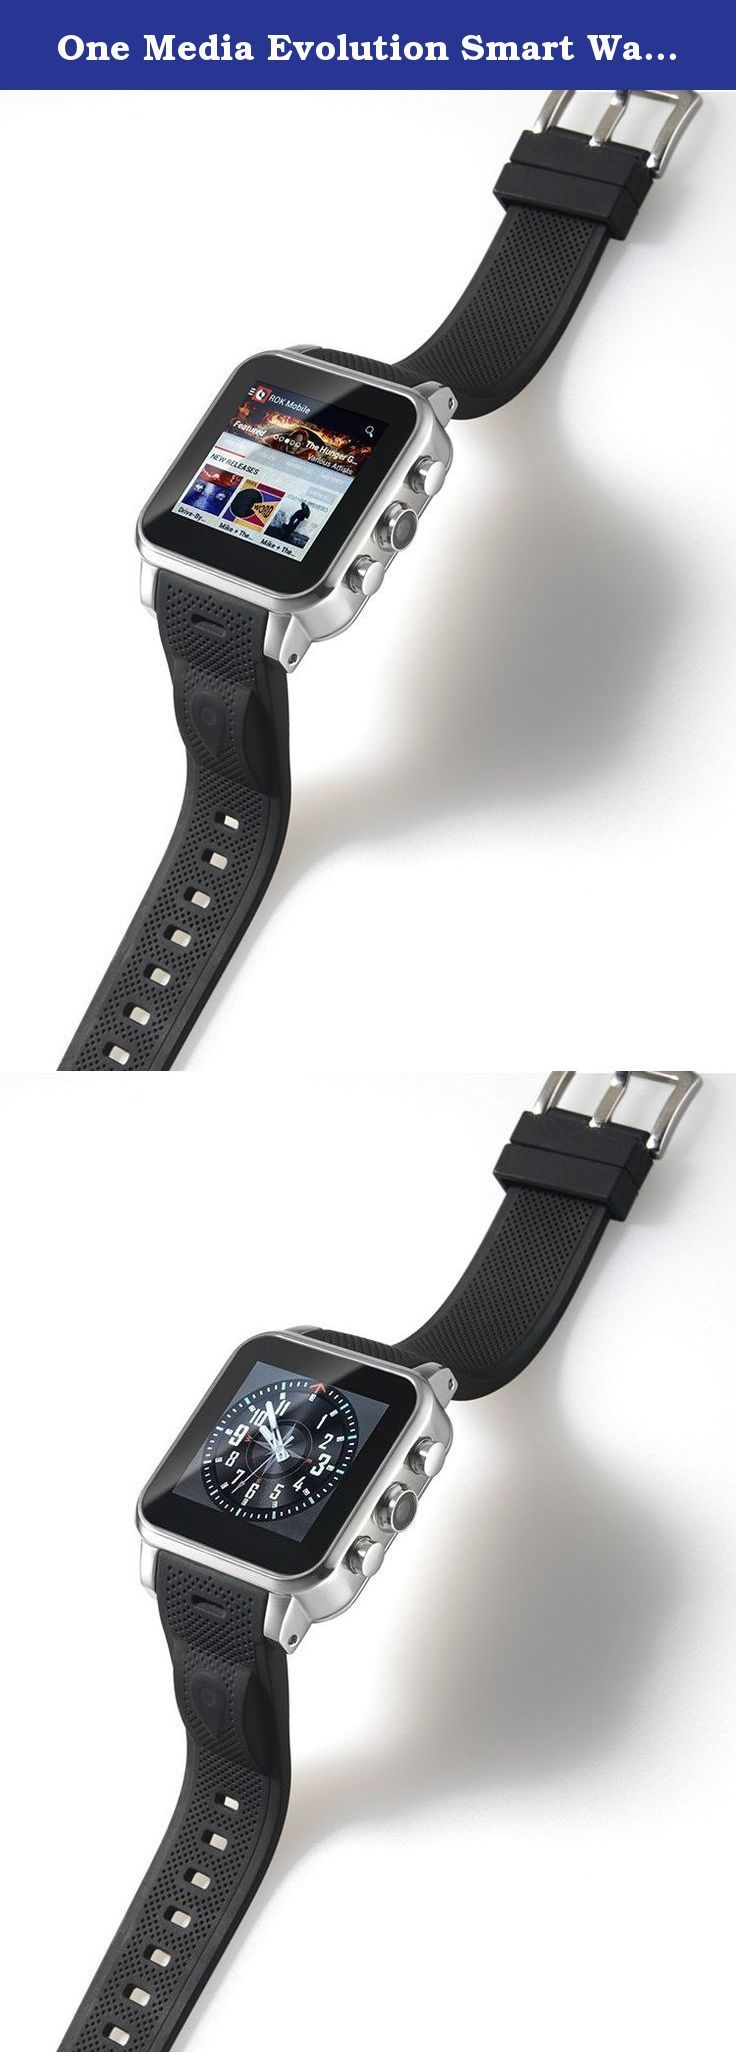 One Media Evolution Smart Watch - Silver. The Evolution is a general use wearable for those users who want to travel light and leave their phone at home, or as a replacement for one of the two phones that so many people are carrying nowadays. Controlled through its touch screen or your voice, it is available in rose gold, silver, or black. Dress it up and take it out for an elegant night on the town, or dress it down and take it out for a run. Not only will it keep you in touch with your...